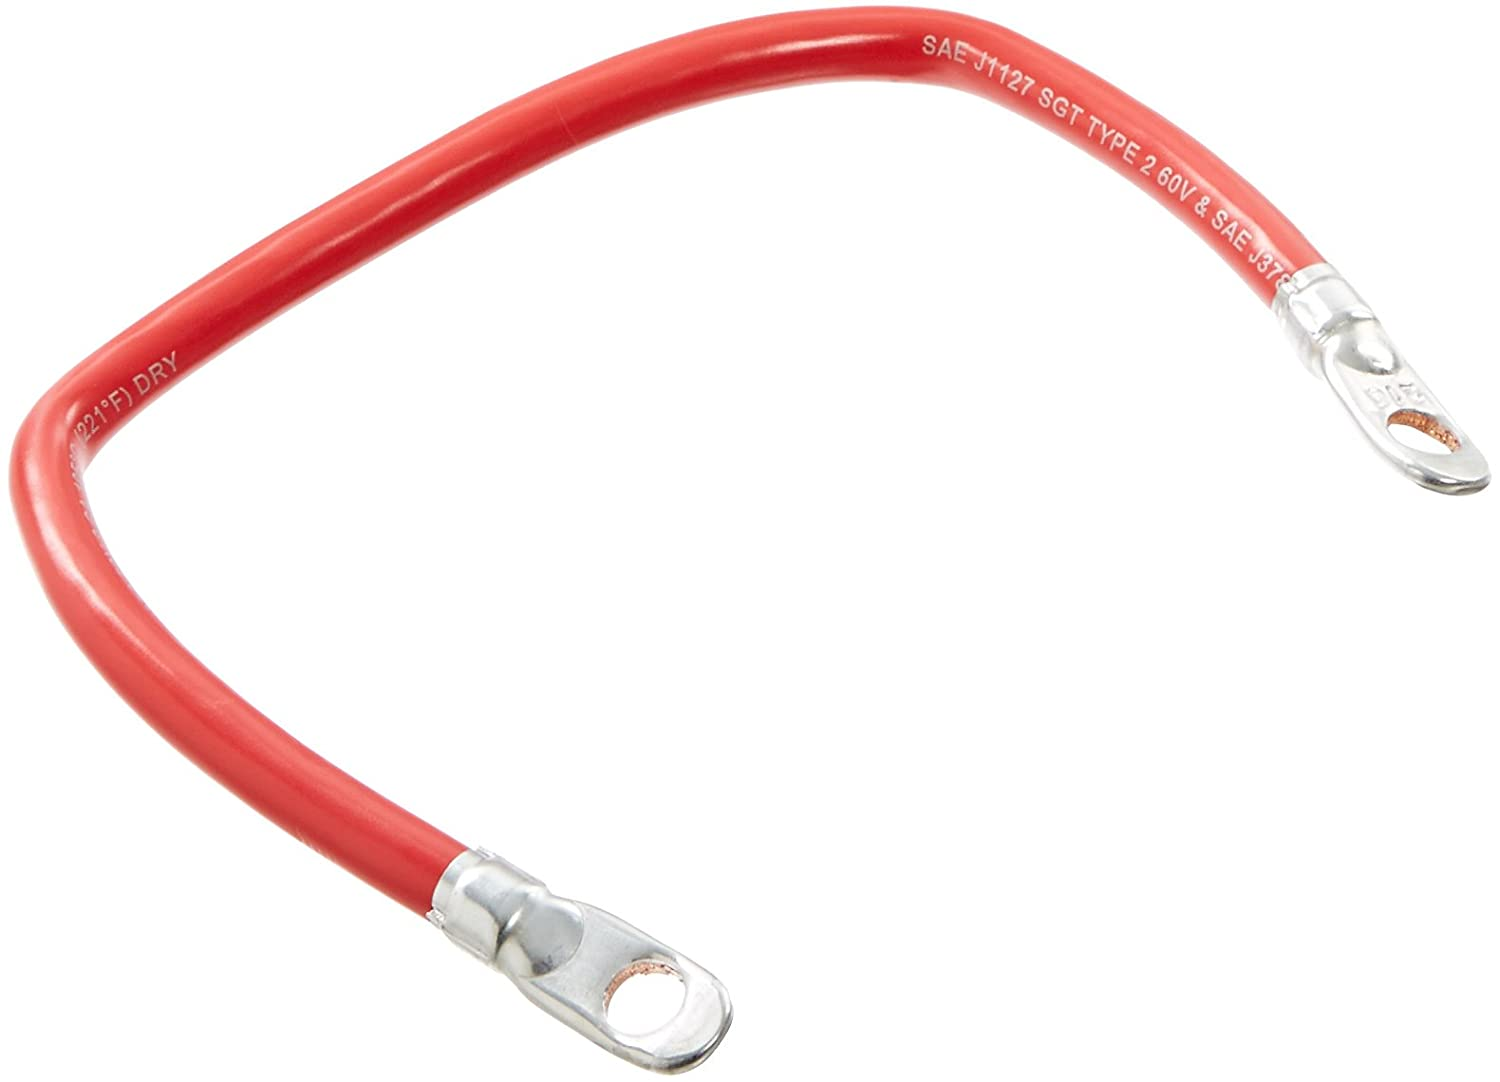 Deka 00363 Switch-to-Starter Battery Cable